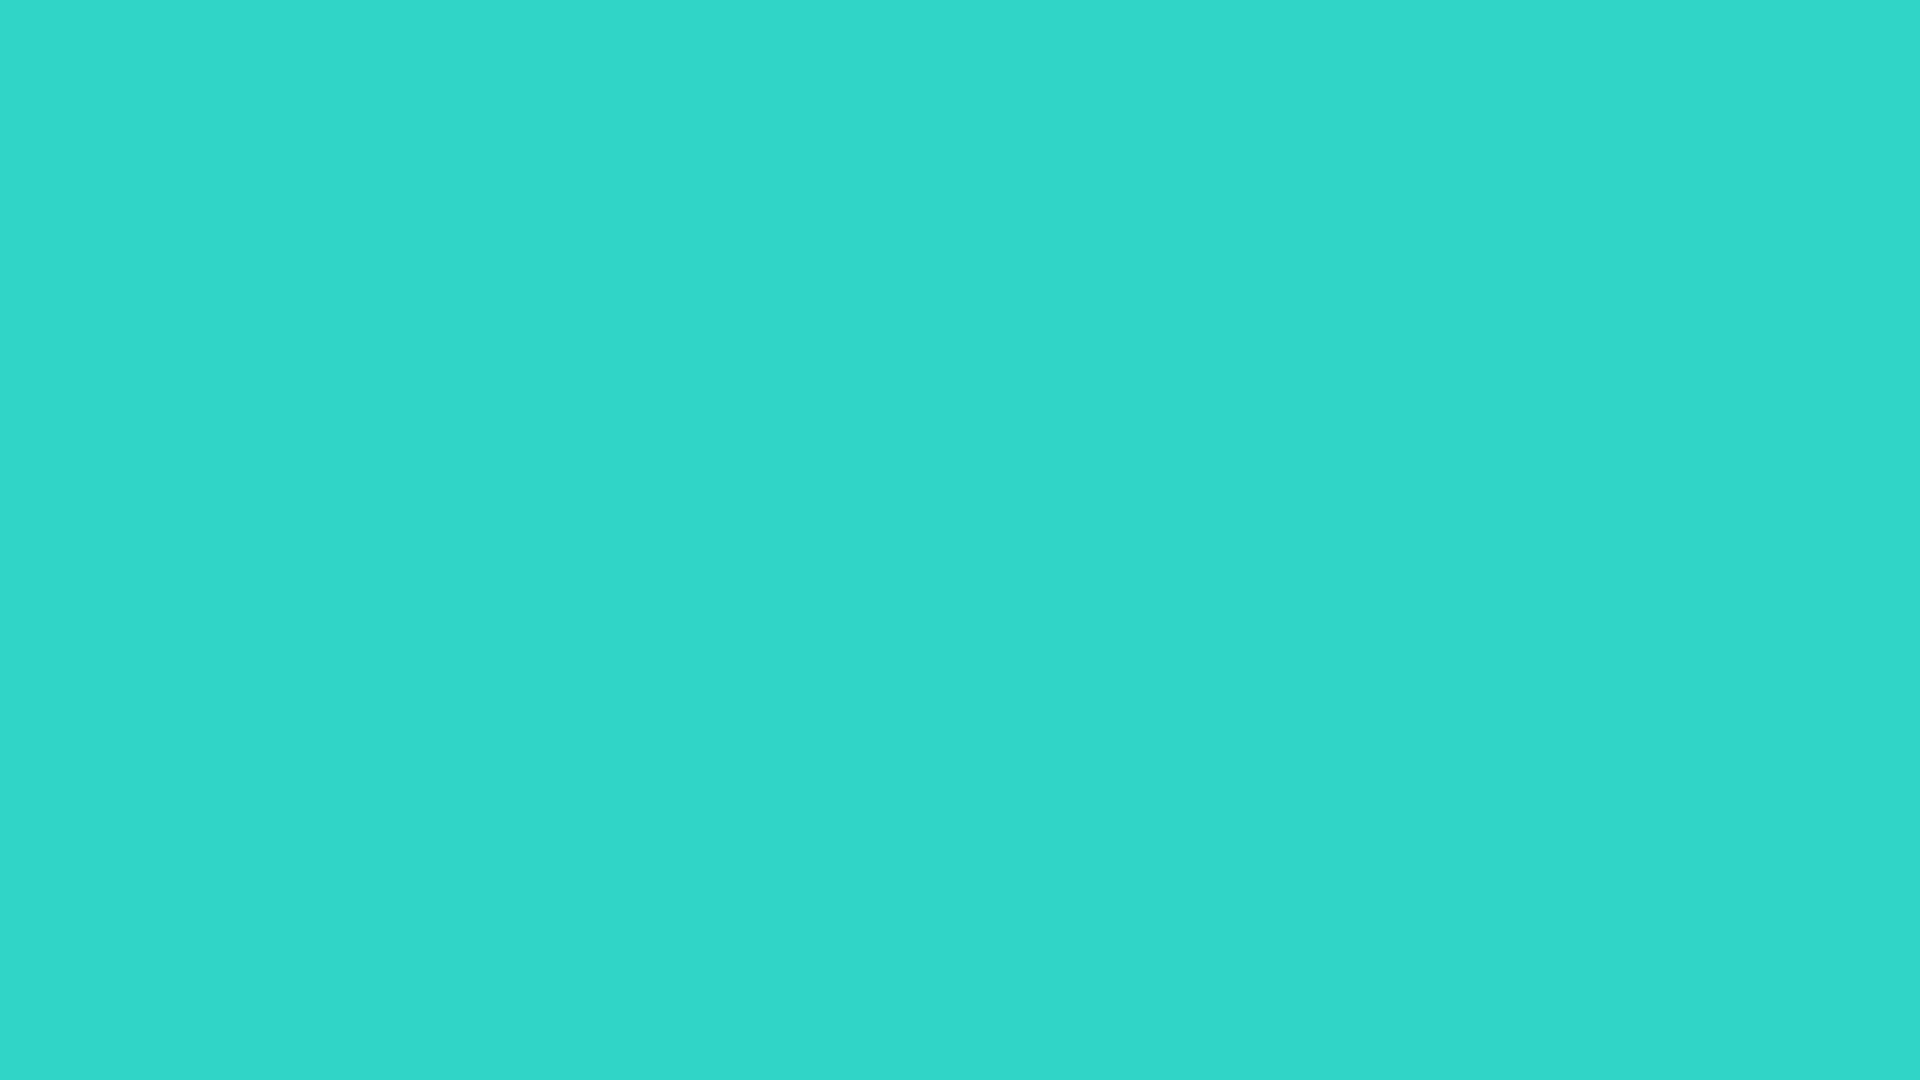 turquoise hd wallpaper -#main